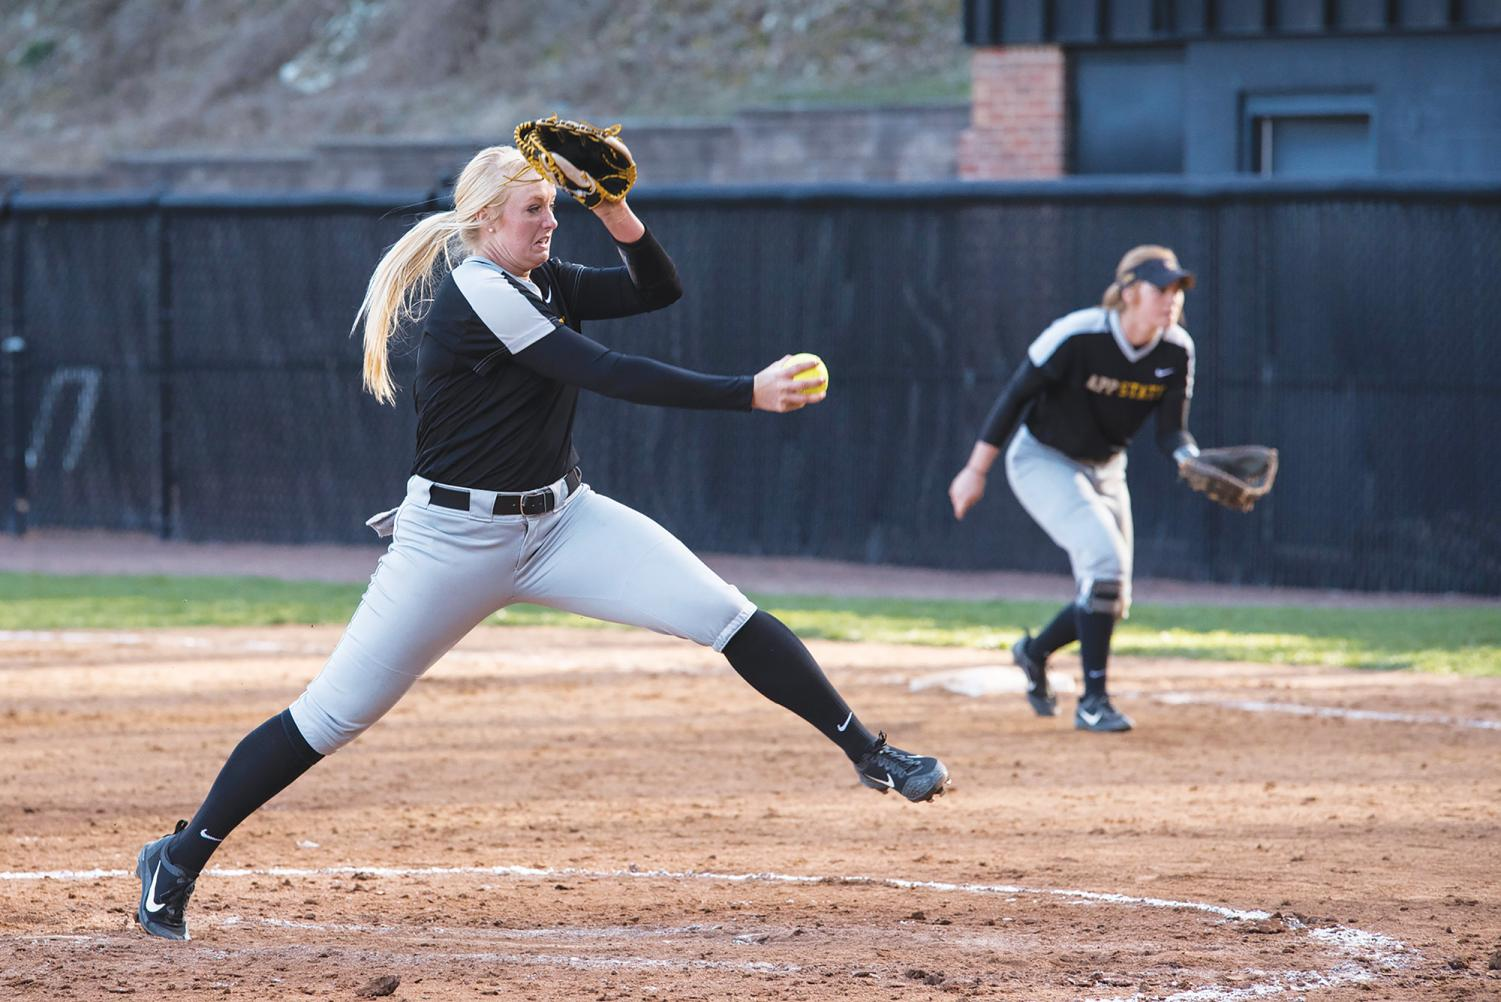 Junior pitcher Kenzi Longanecker winds up and fires to the plate.